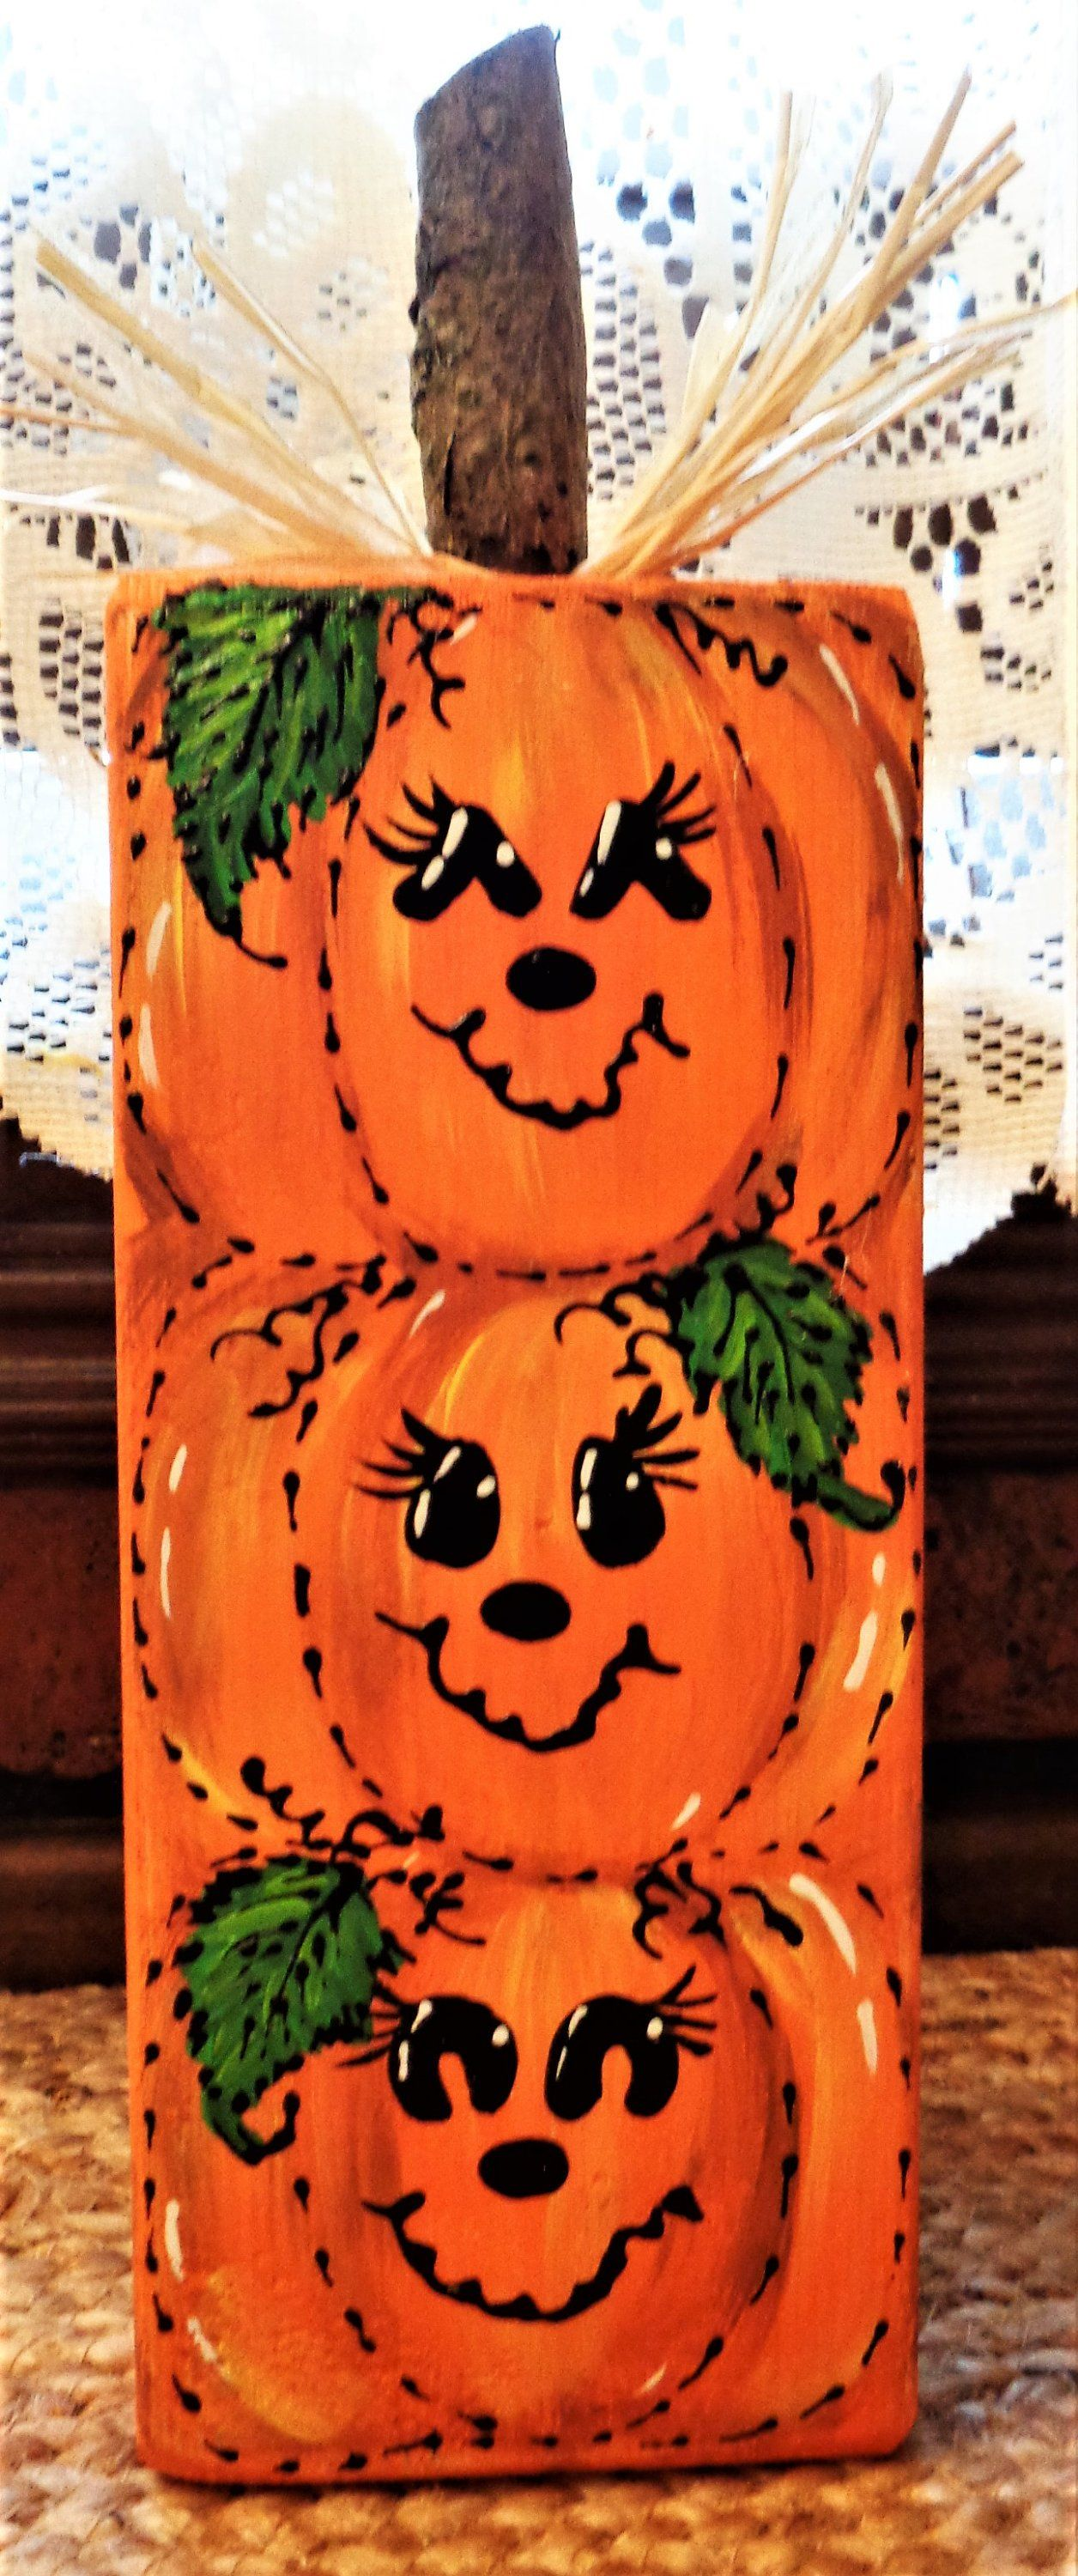 Halloween badezimmer dekor triple chunky wood block pumpkin sitter halloween fall autumn